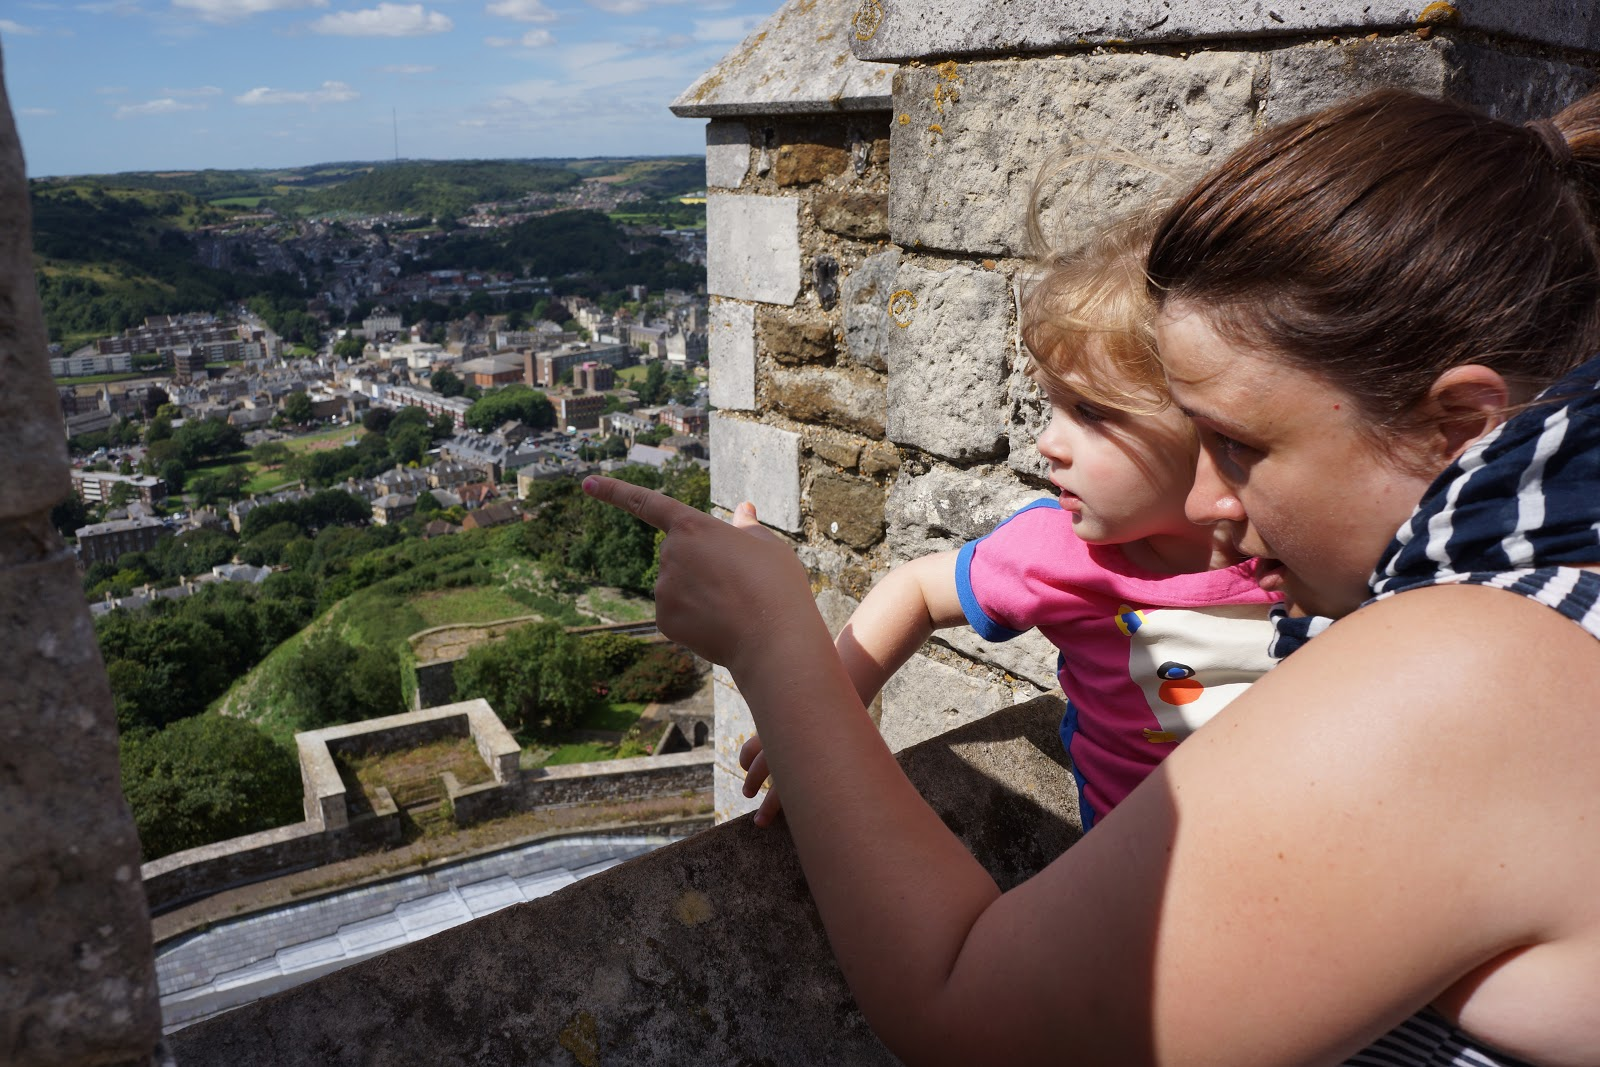 mum and daughter at a castle